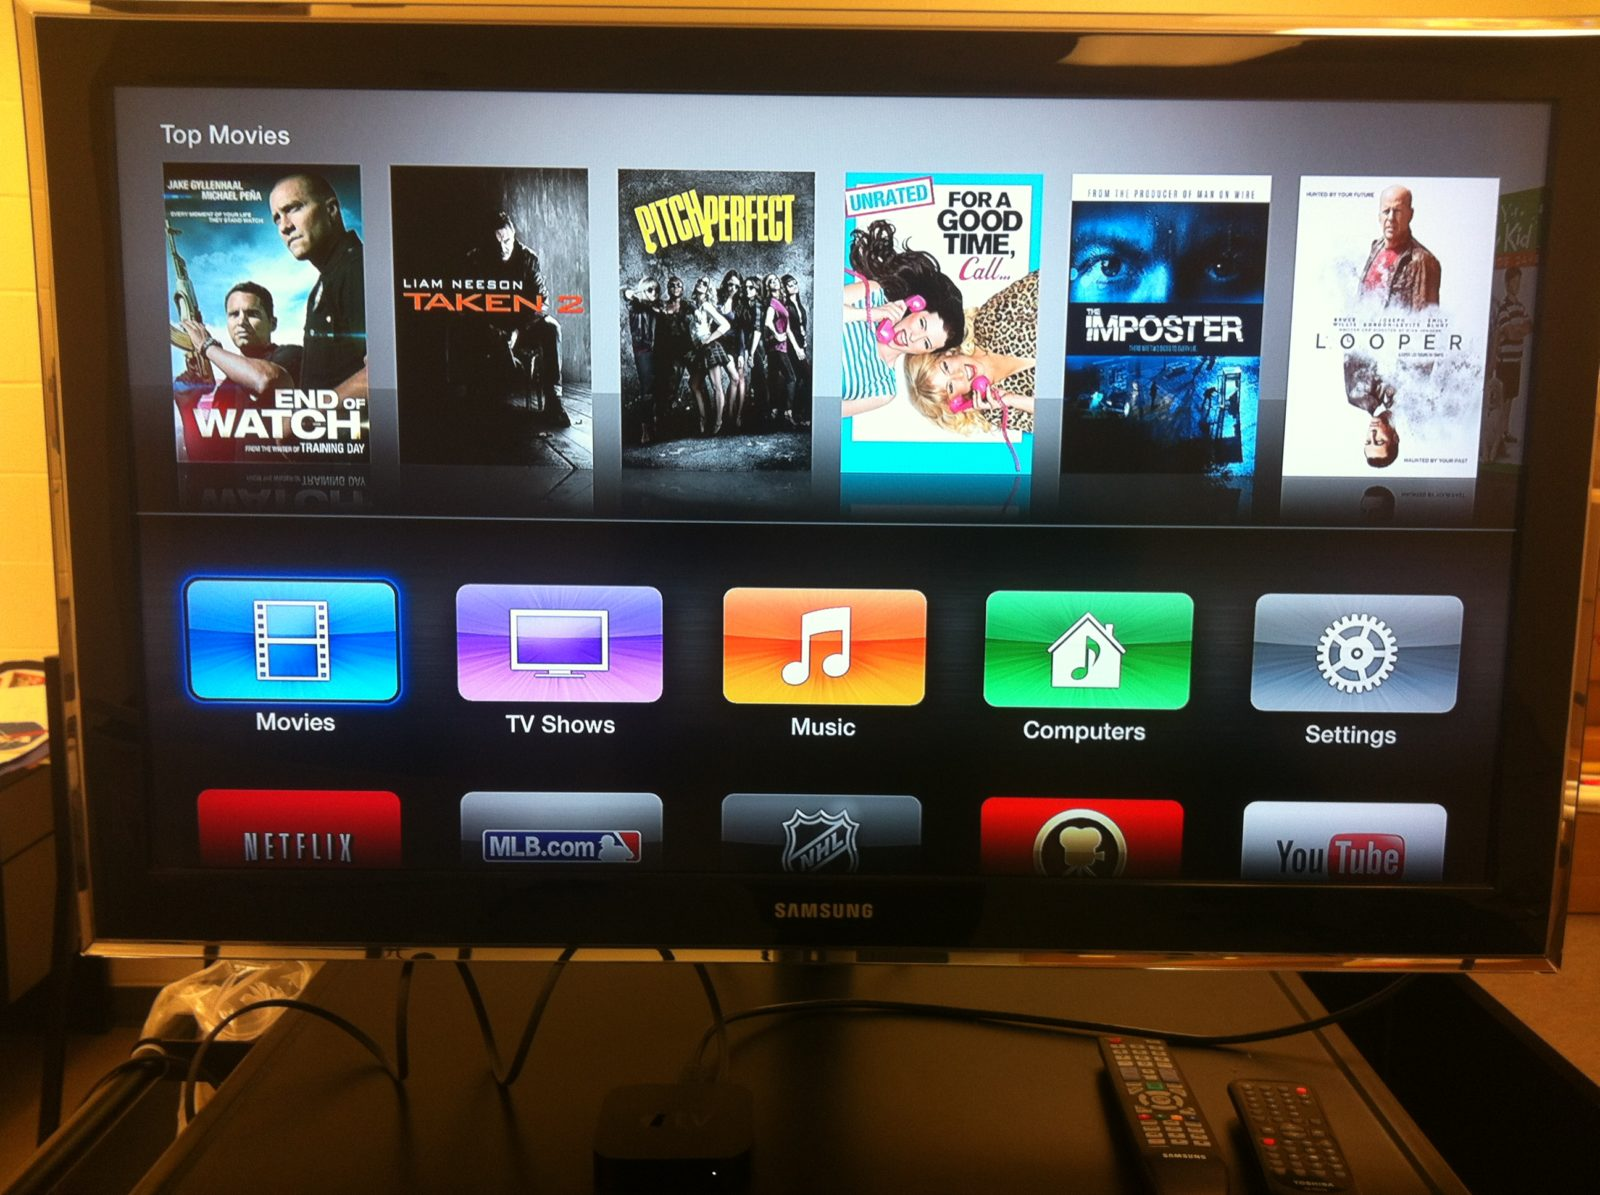 How to Setup Apple TV to Mirror iPad